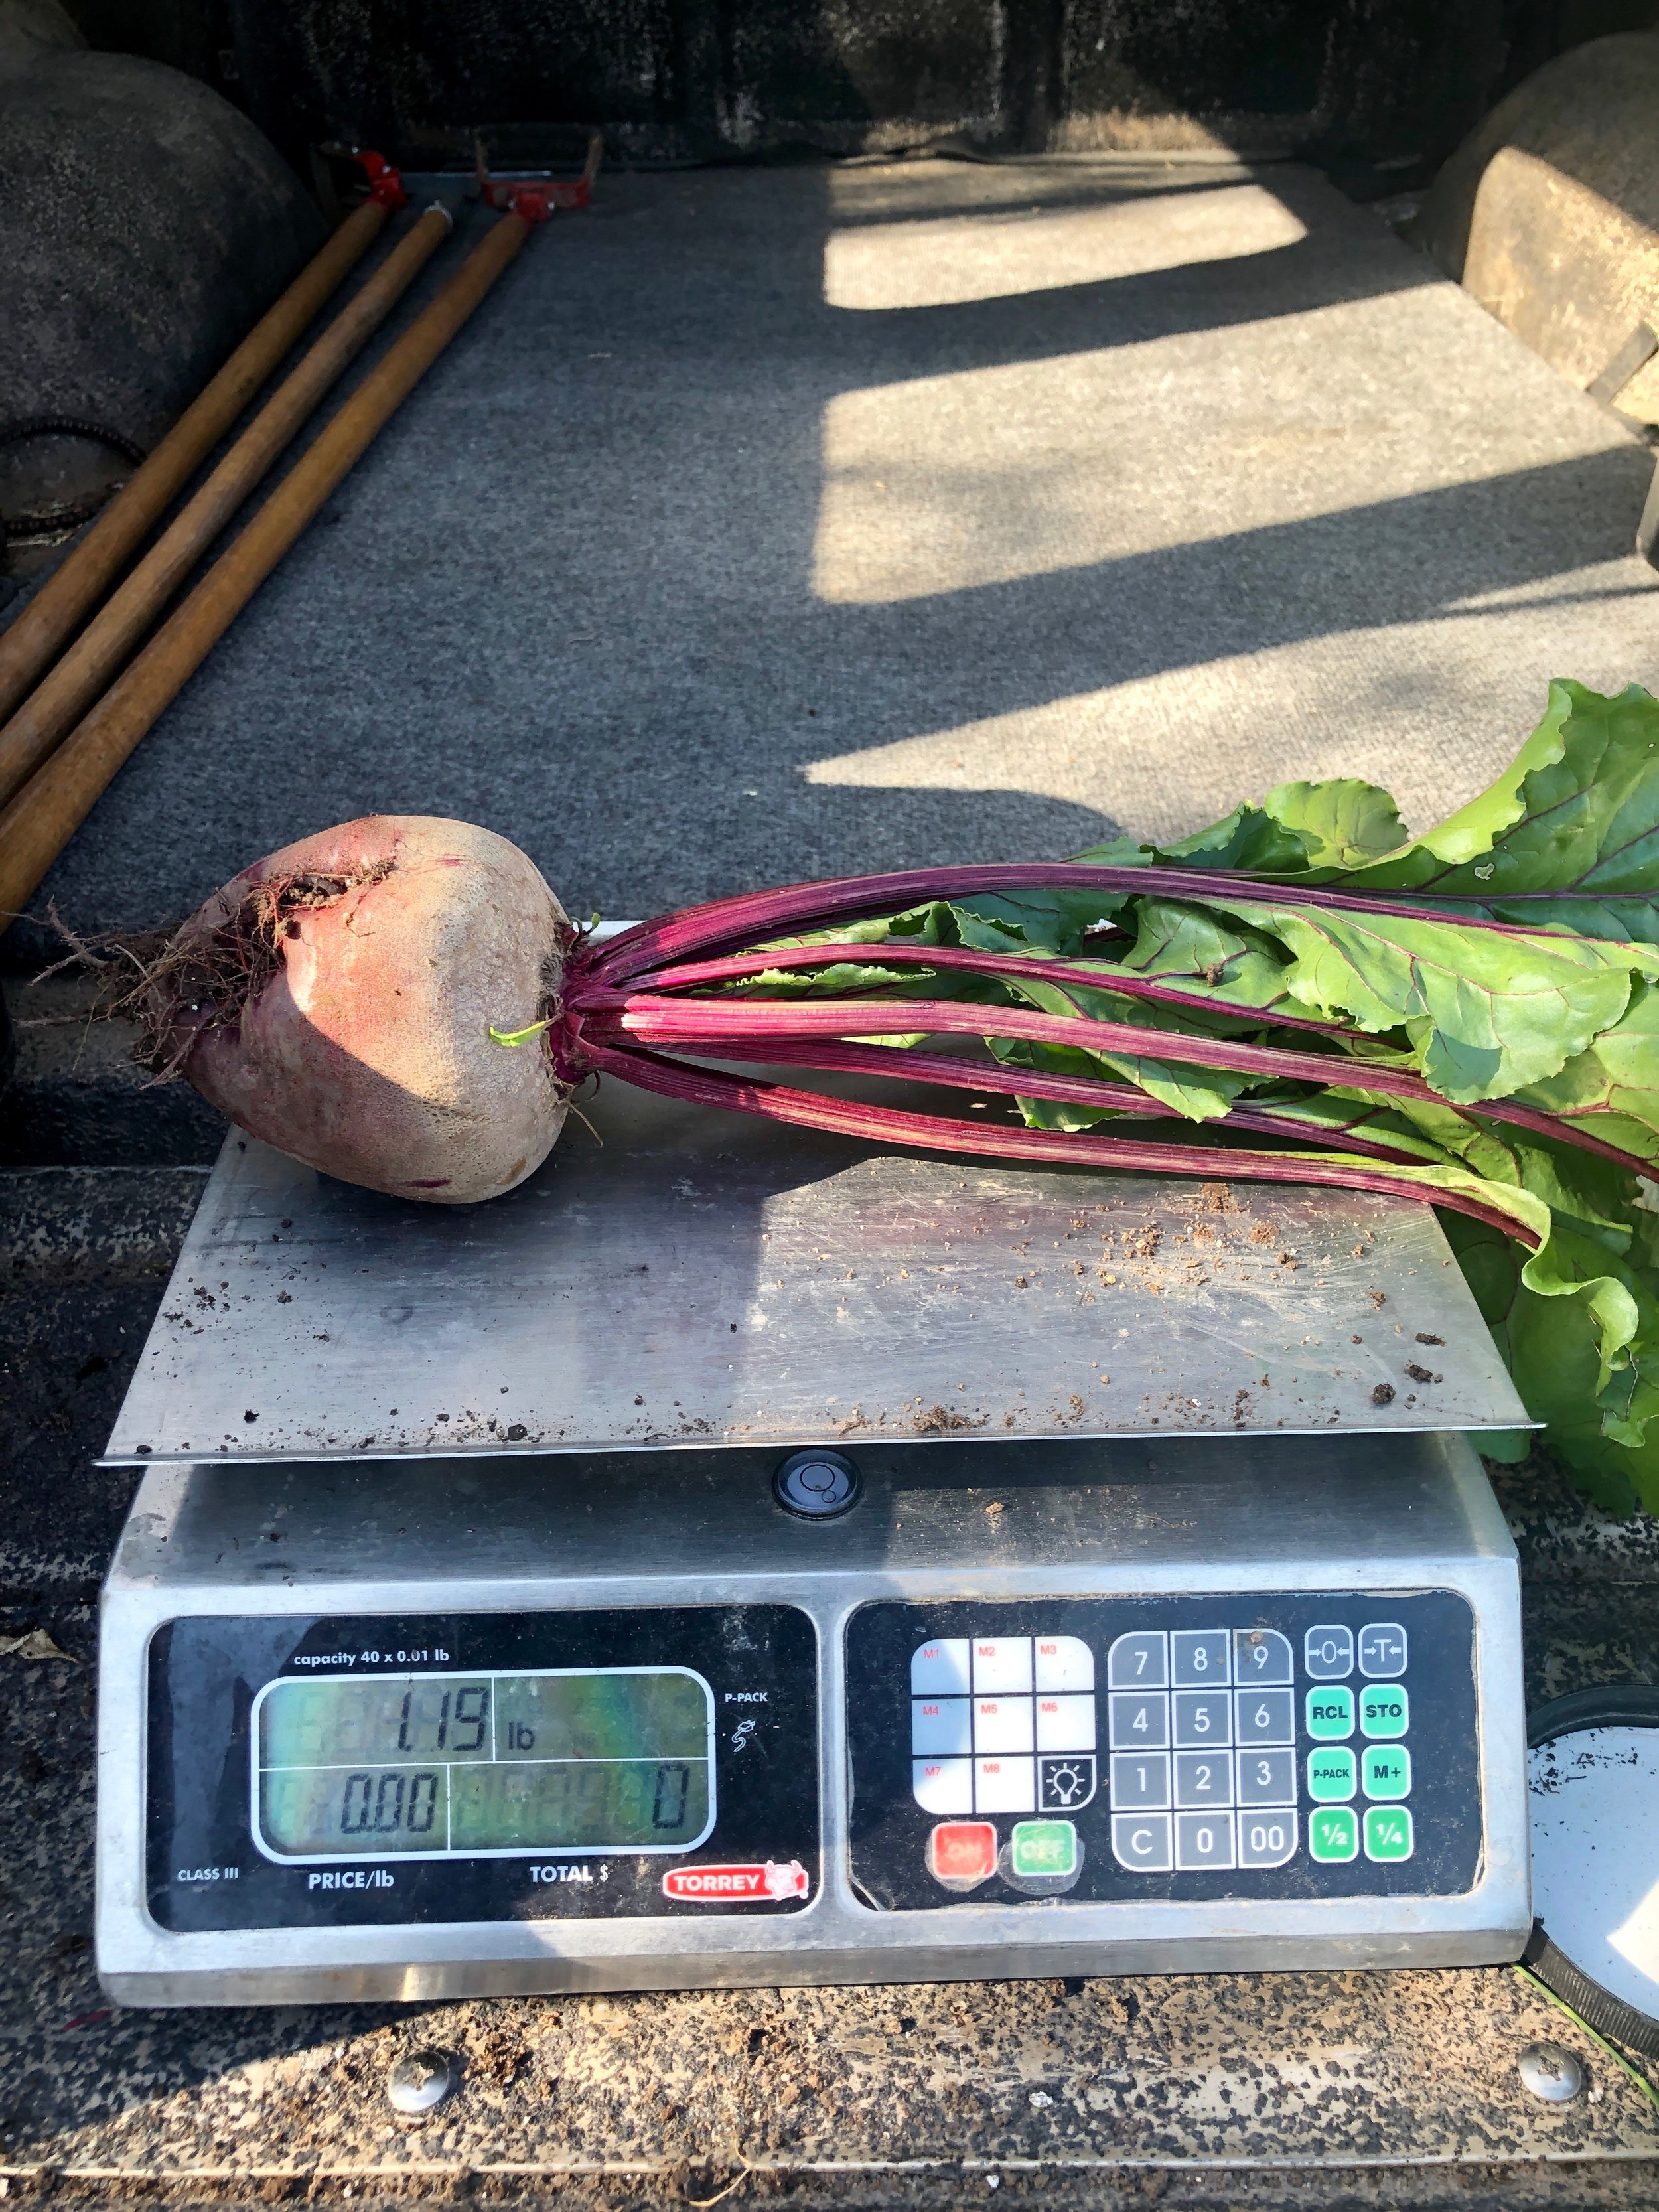 Storage beets are sizing up nicely!